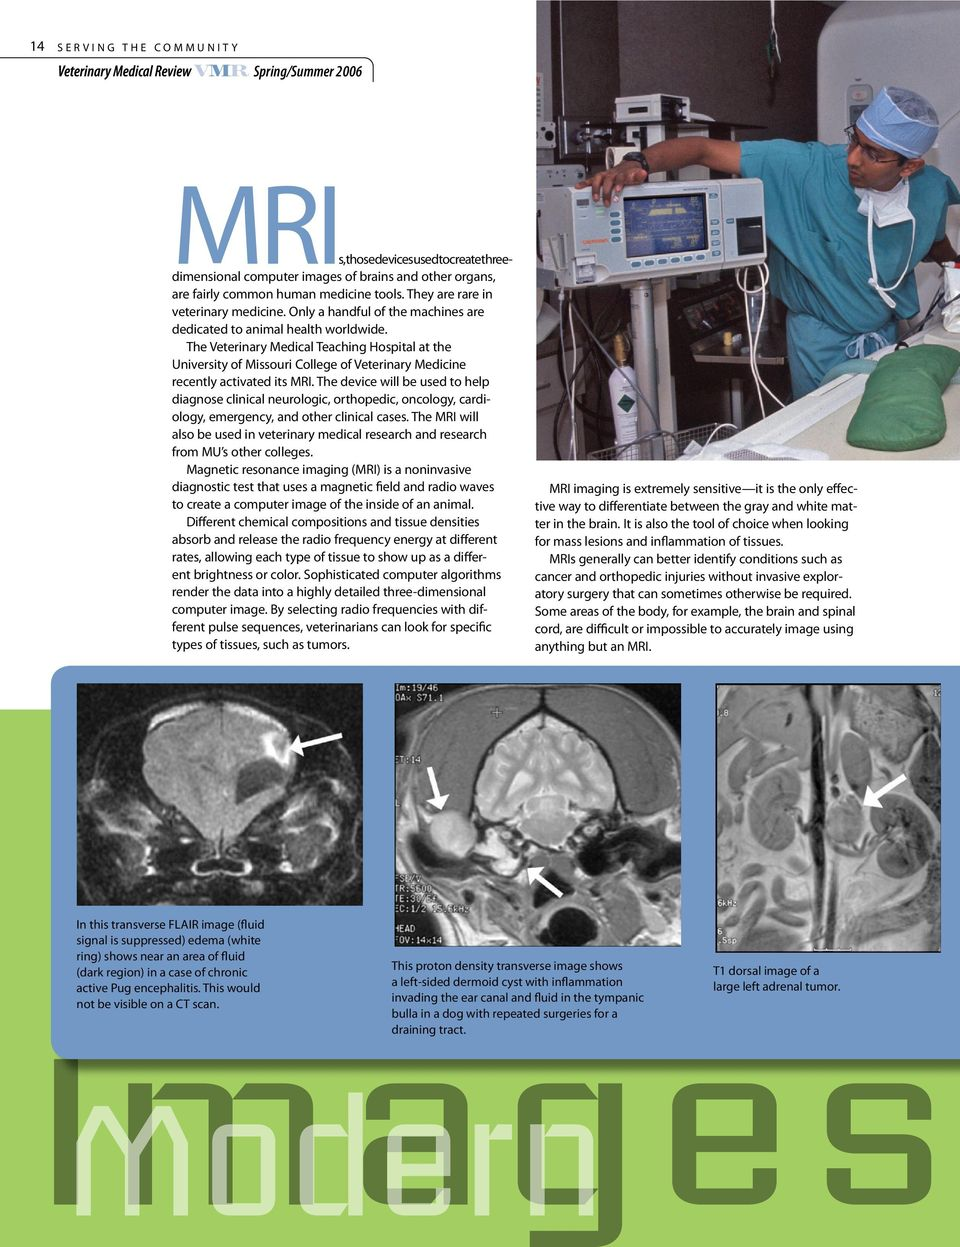 The Veterinary Medical Teaching Hospital at the University of Missouri College of Veterinary Medicine recently activated its MRI.